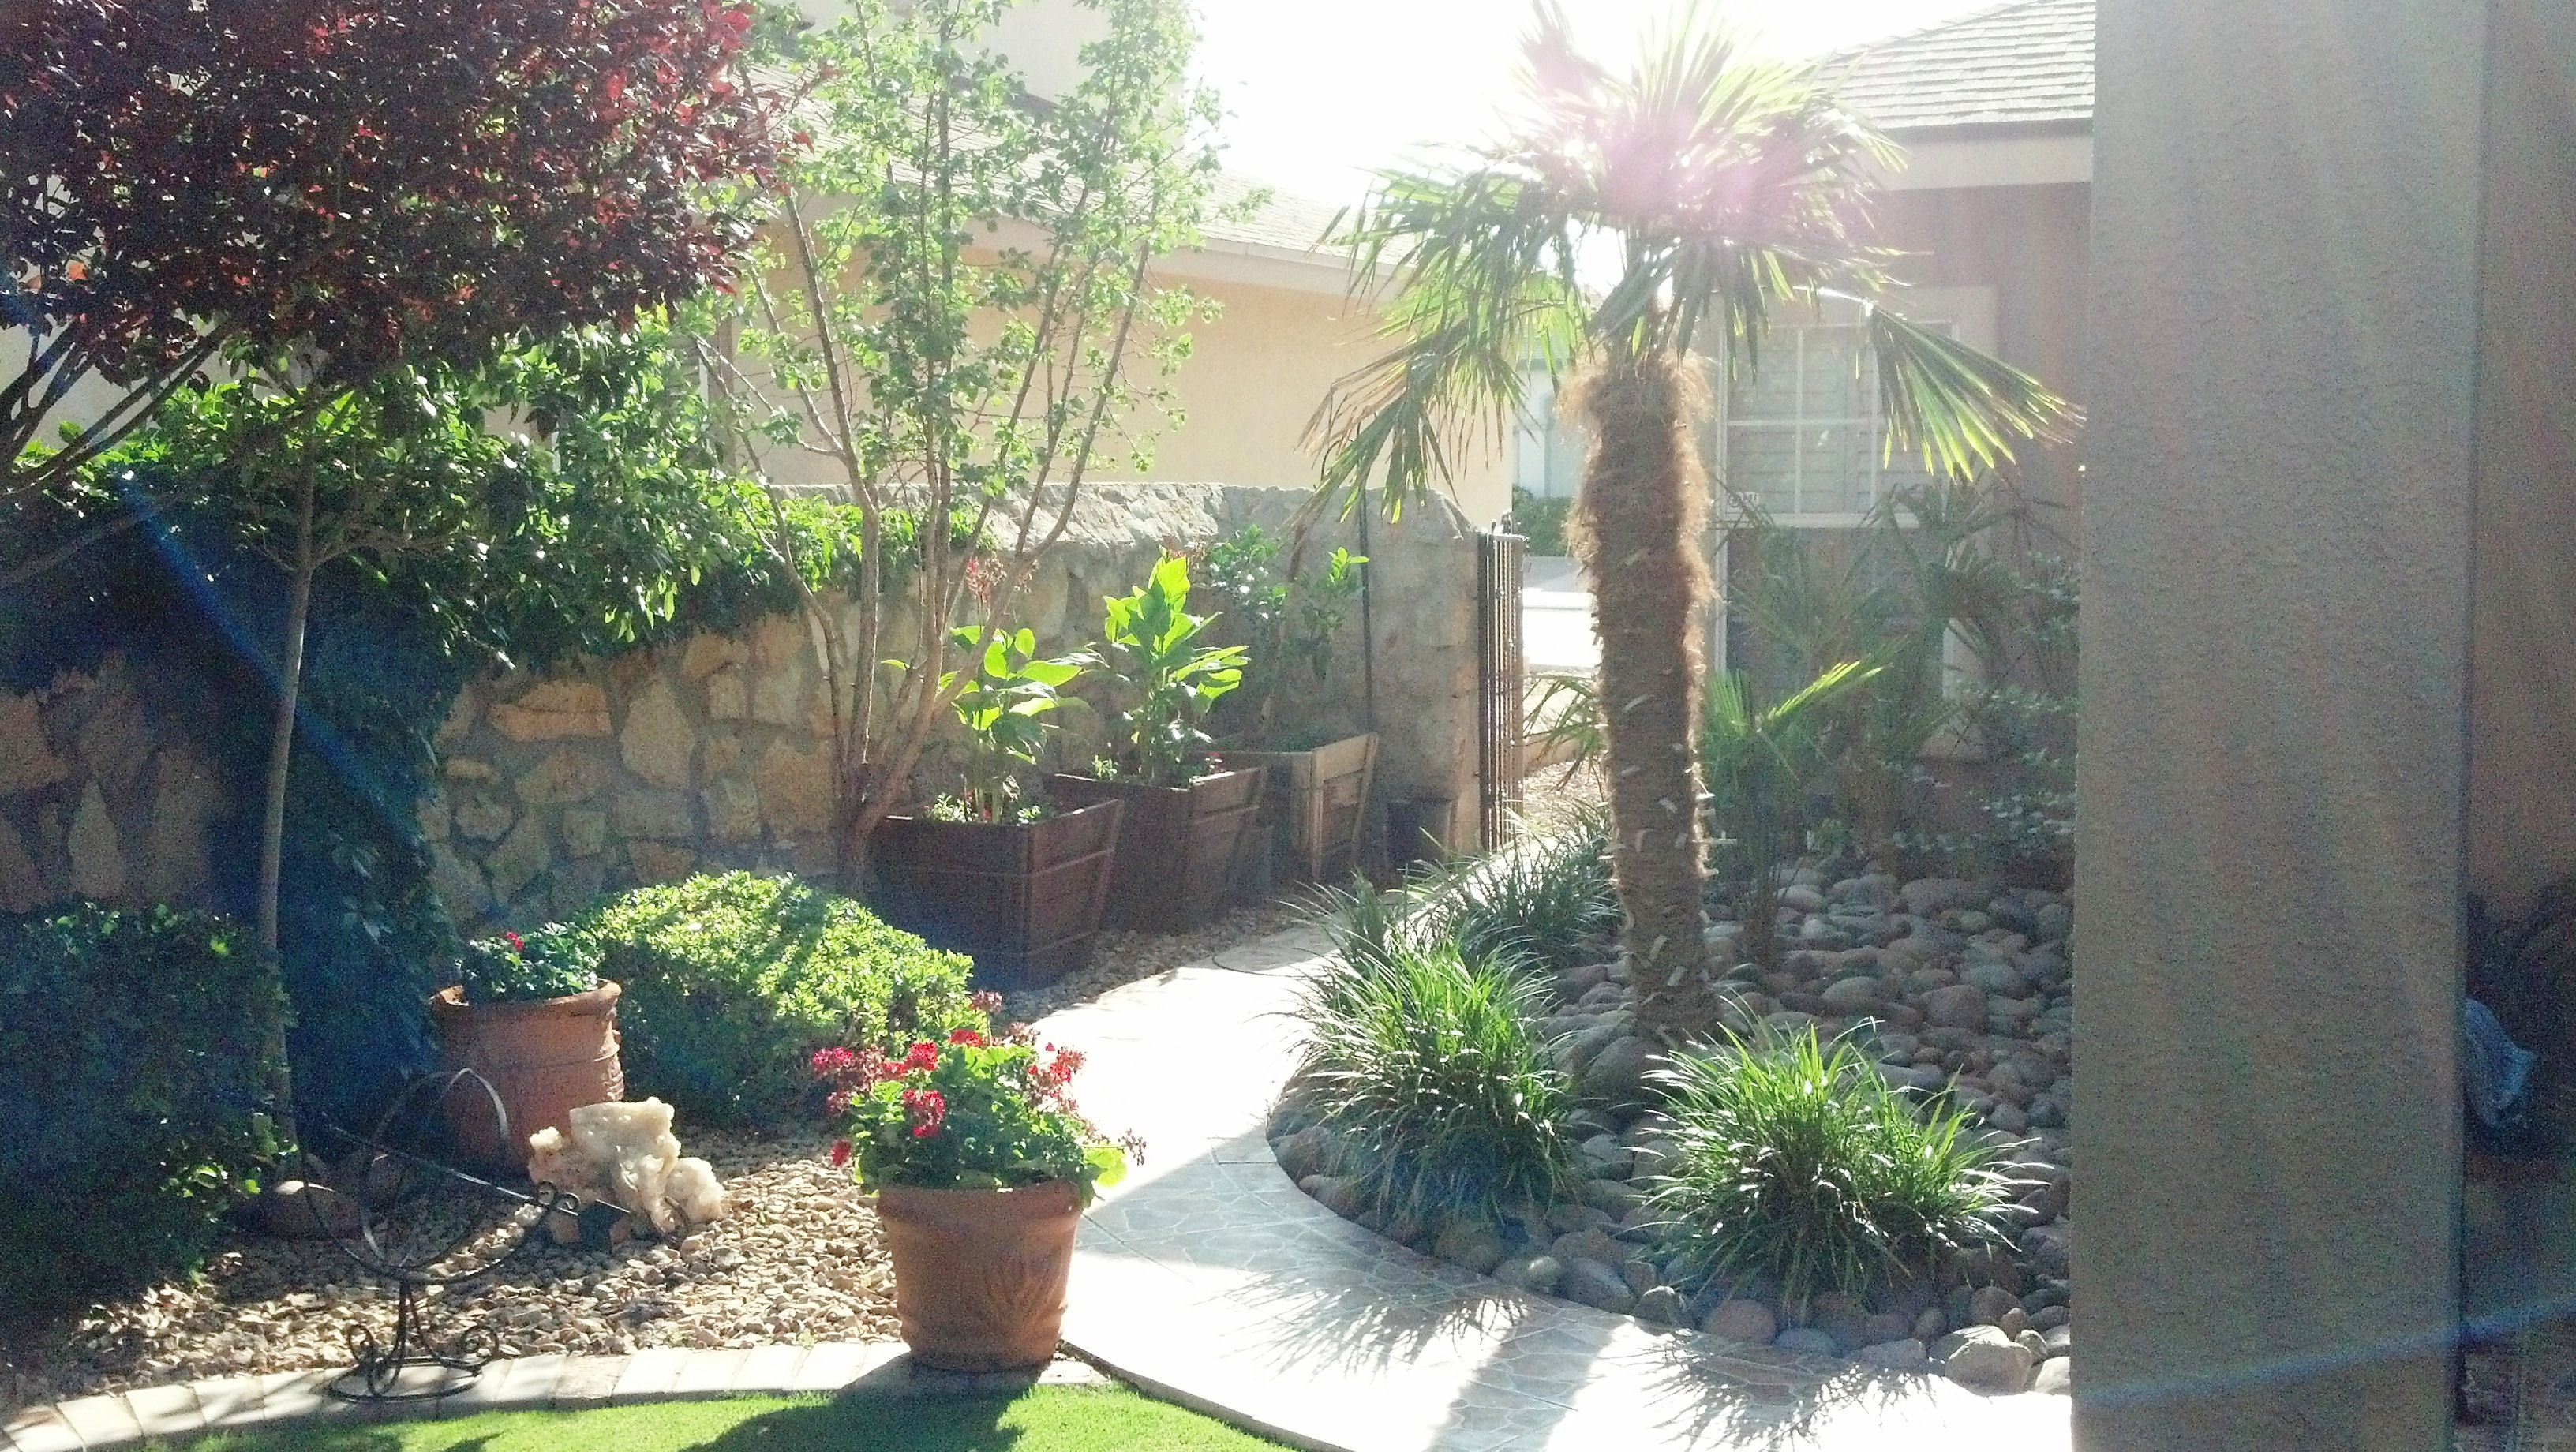 Windmill Palm Andscaping El Paso Tx By Chavez Construction 16 Jpg